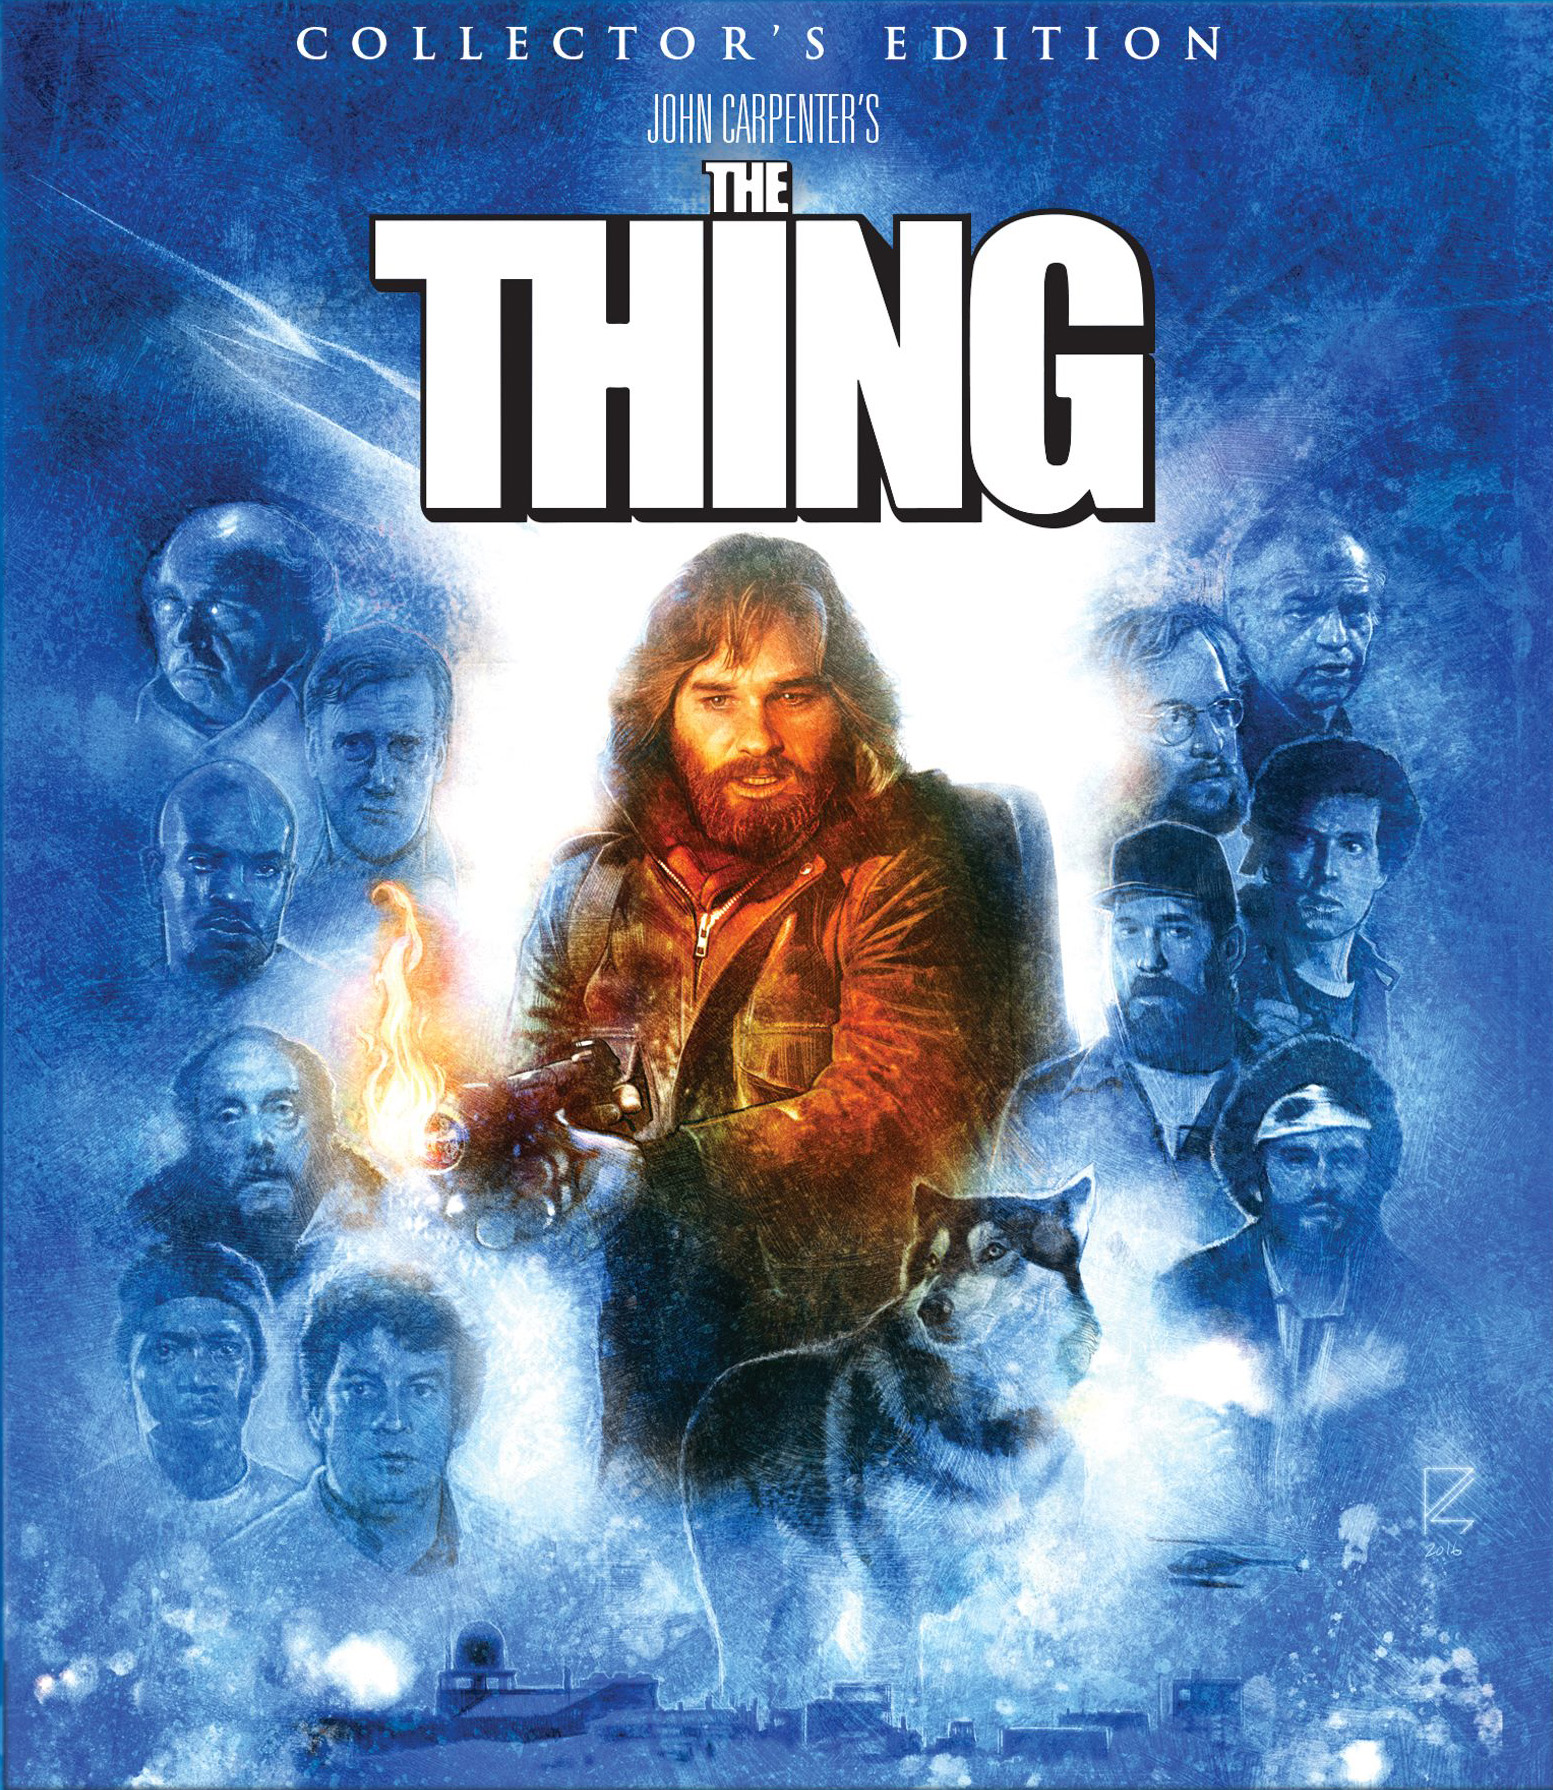 The Thing-coverart-72.jpg